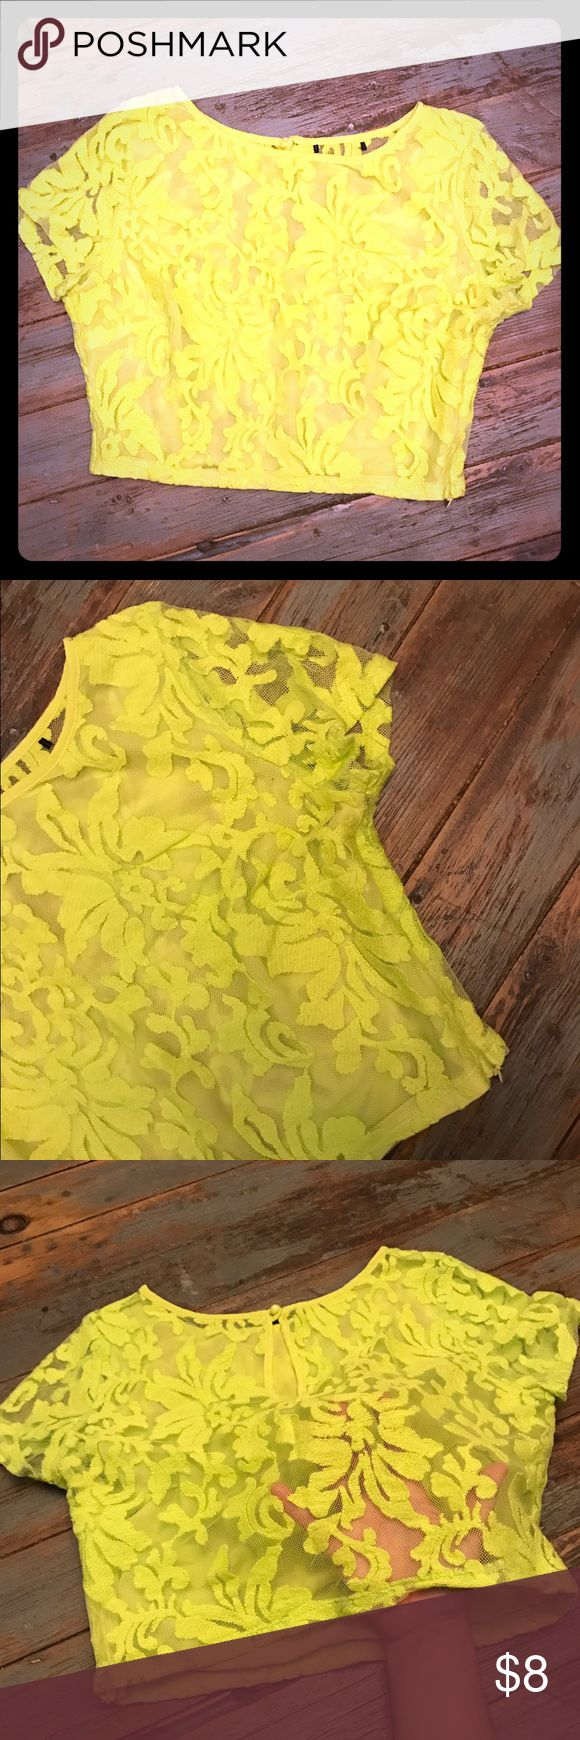 Neon Yellow Sheer Lace Crop Top Forever 21 Neon Yellow Lace Crop Top - Front Lined - Sleeves and back are sheer. High Neck - key hole with button detail - side zipper . Worn once! (Cut large black tag out of back because it looked terrible through the sheer back). Forever 21 Tops Crop Tops